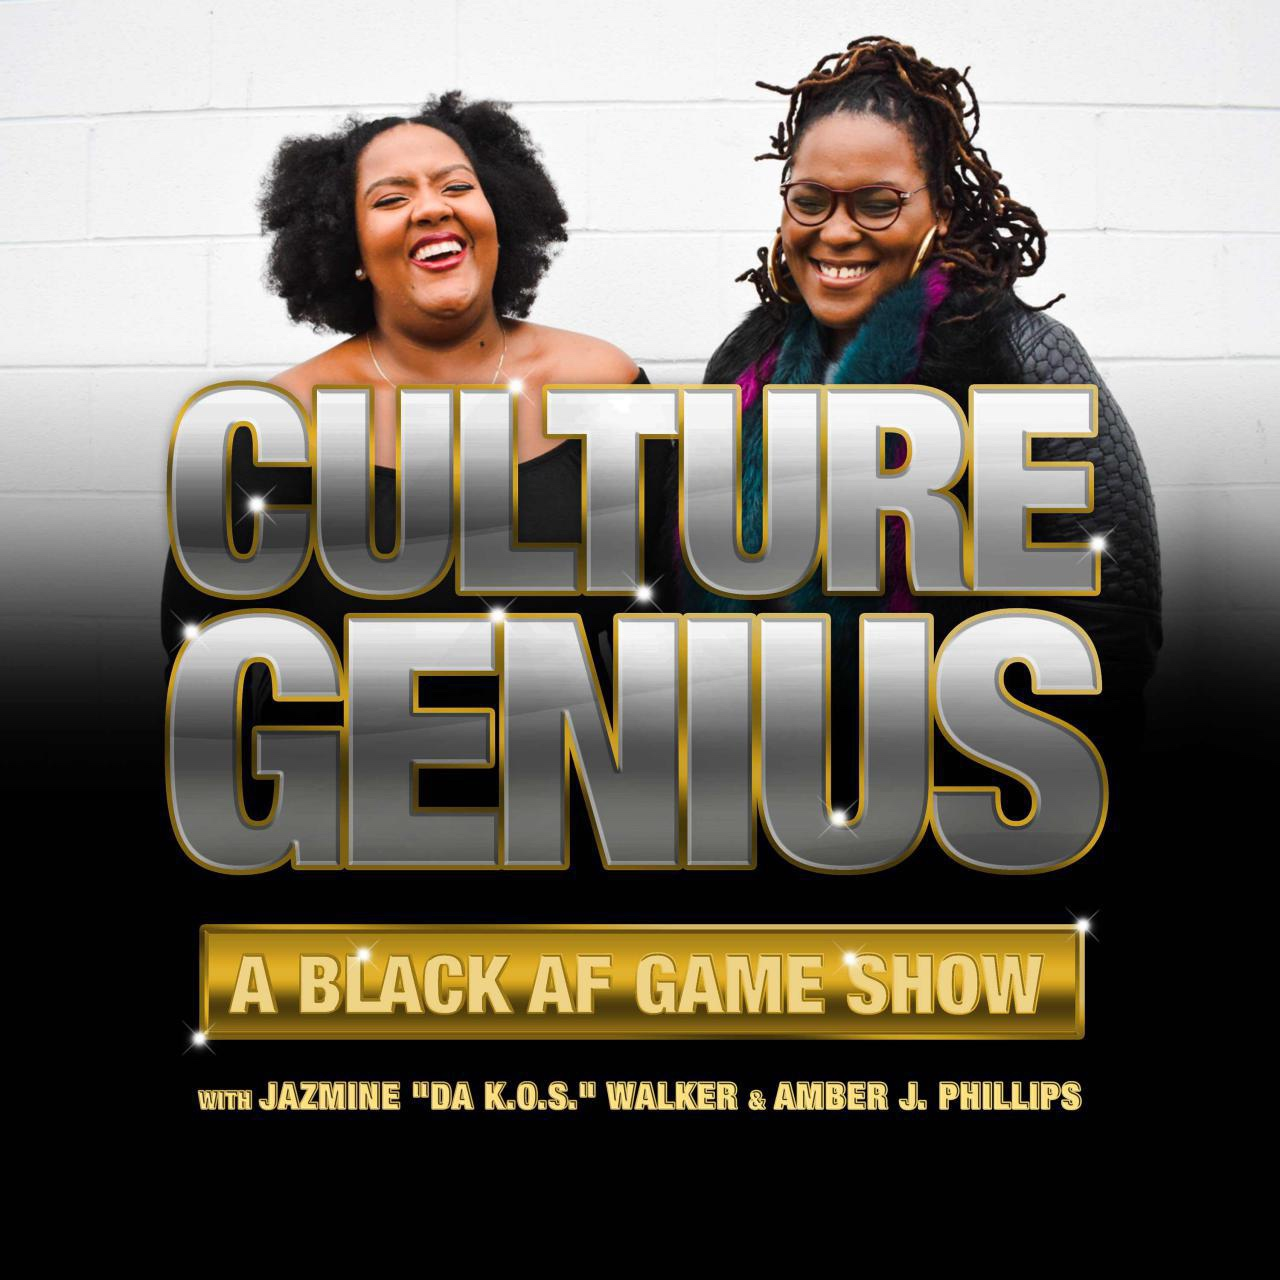 """Culture Genius Podcast:A Black AF Gameshow - Presented by Stitcher Premium, Culture Genius is a Black AF trivia game show hosted by the creators of the Black Joy Mixtape Podcast, Amber J. Phillips, The High Priestess of Black Joy and Jaz The King of the South. Each week, Amber and Jaz recap some of the most iconic moments in Black Culture while quizzing contestants who are some of the best, brightest, and hilarious talents in media, art, and culture. Running through trivia categories like """"Black in The Day"""", """"The Price is A'ight"""" and """"Buss A Rhyme"""", every show is a celebration of Black excellence from the past, present, and the future! Listen as contestants go hard to earn respect and the esteemed title, Culture Genius! Do it for the culture, and play along! Who knows, you may be a Culture Genius too!"""